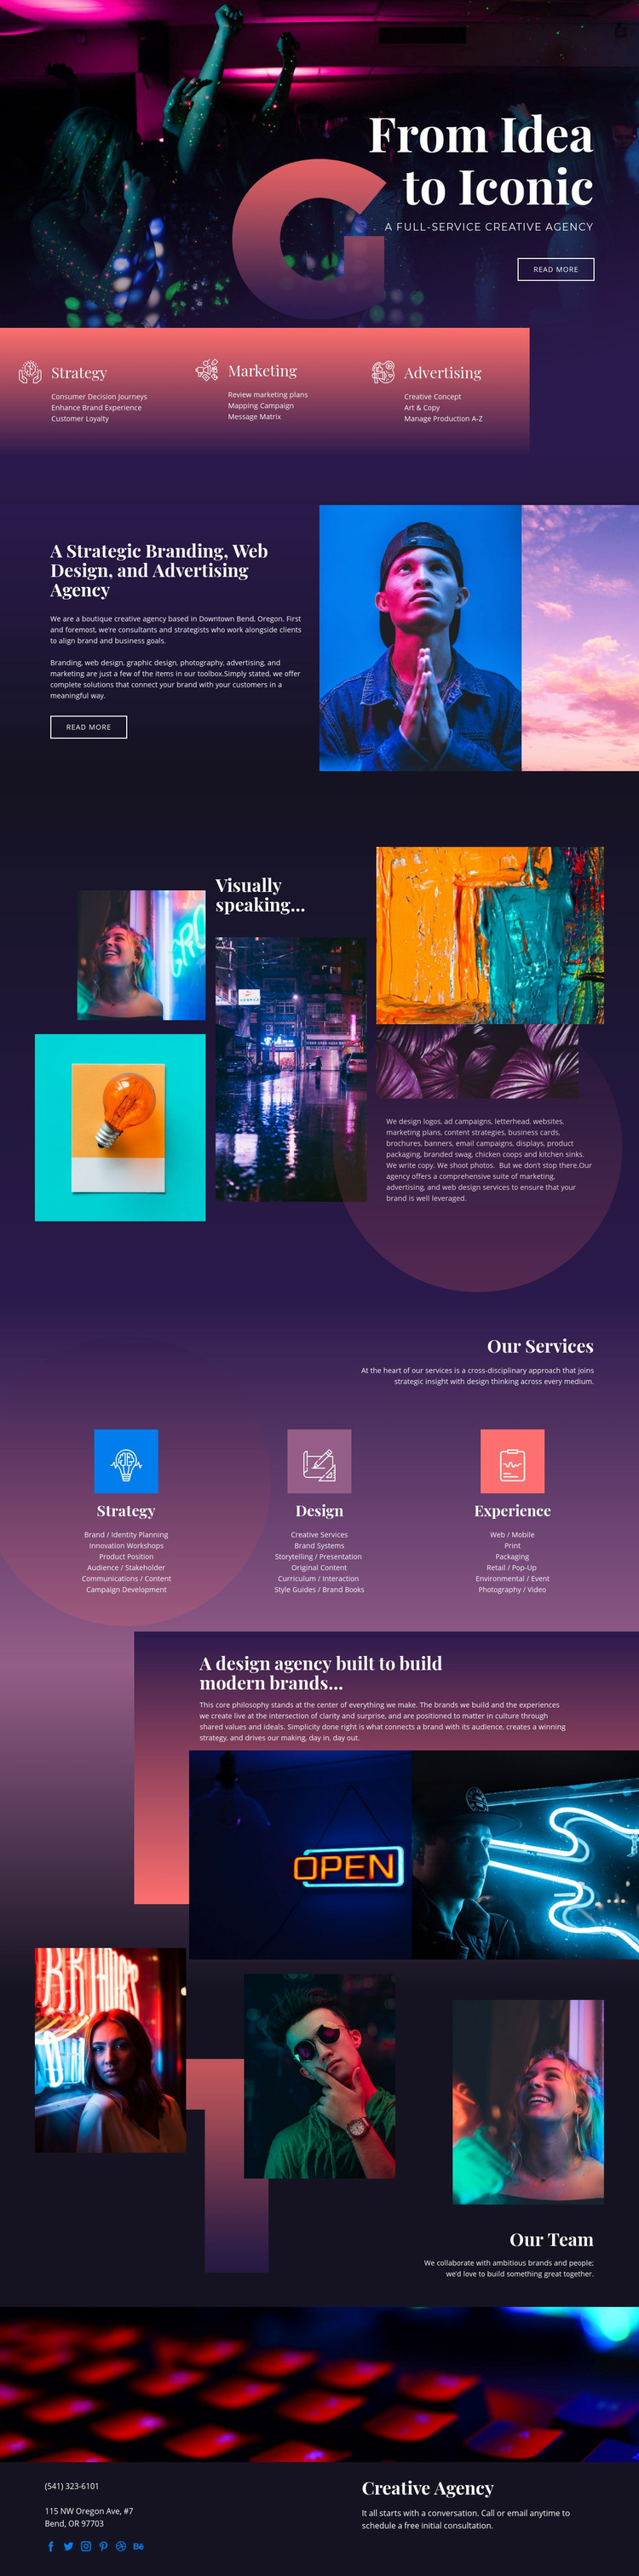 Iconic ideas of art Web Page Designer